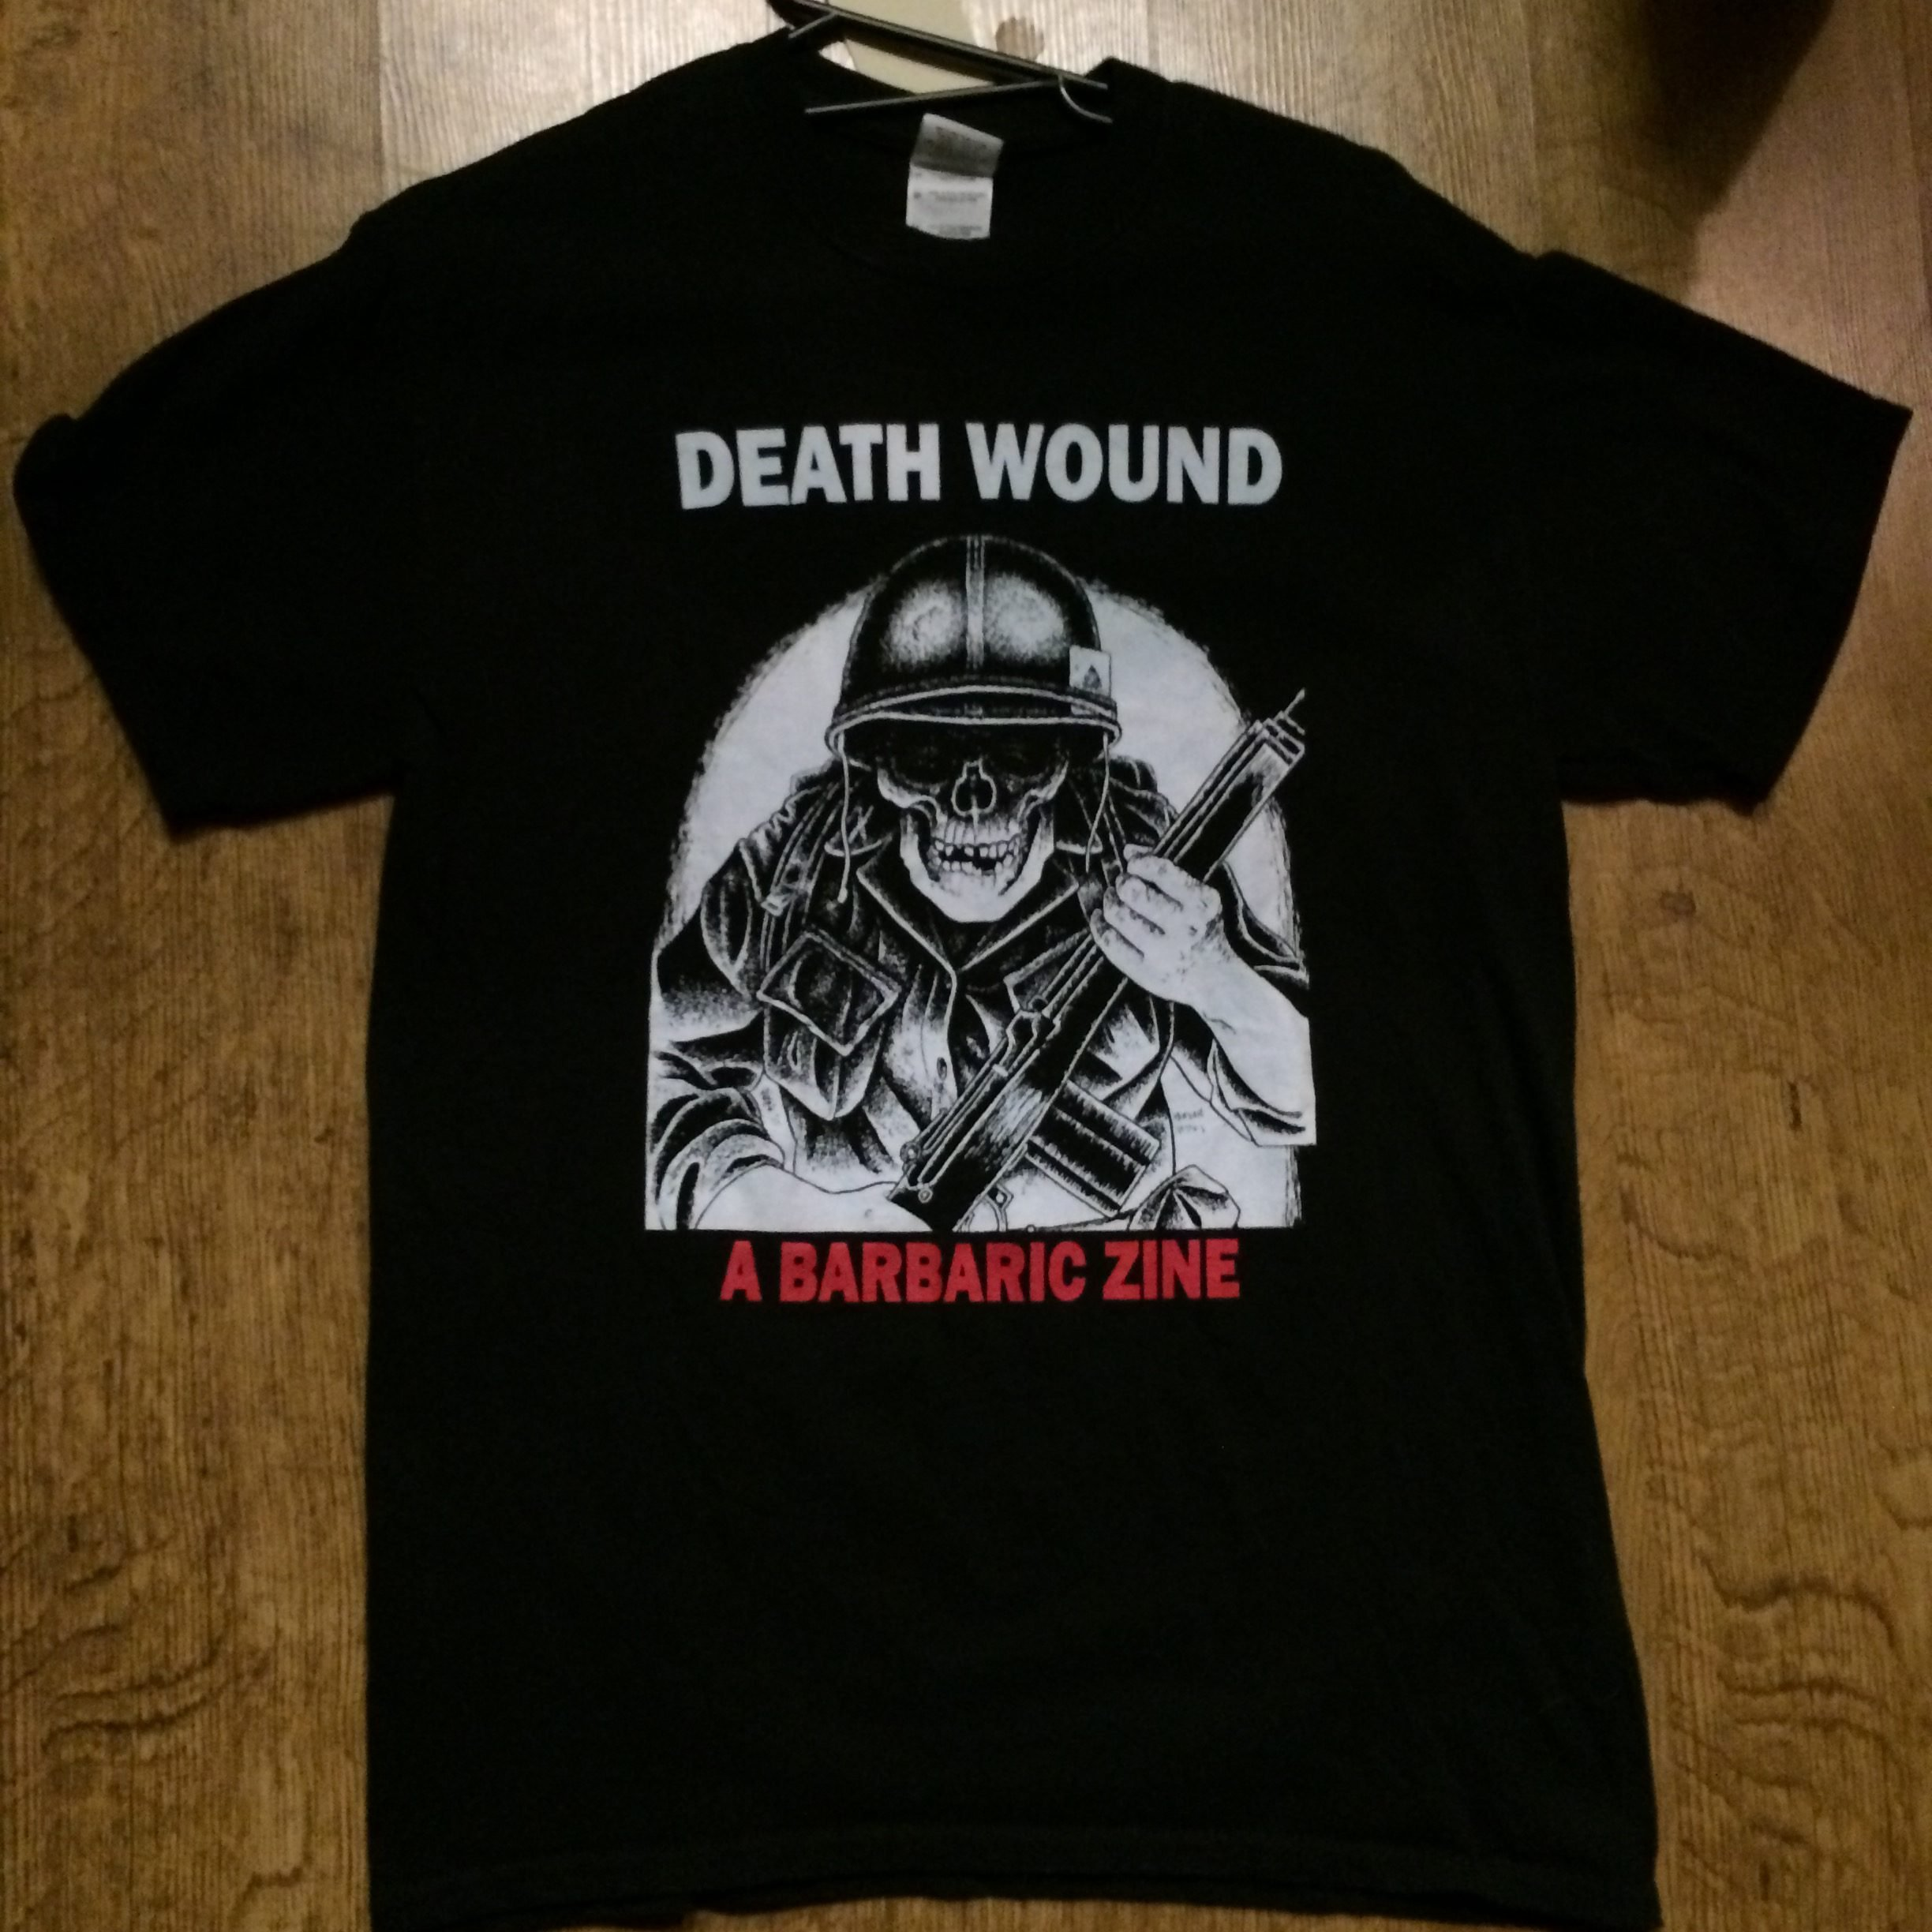 Photo of the Death Wound T-shirt (Black)